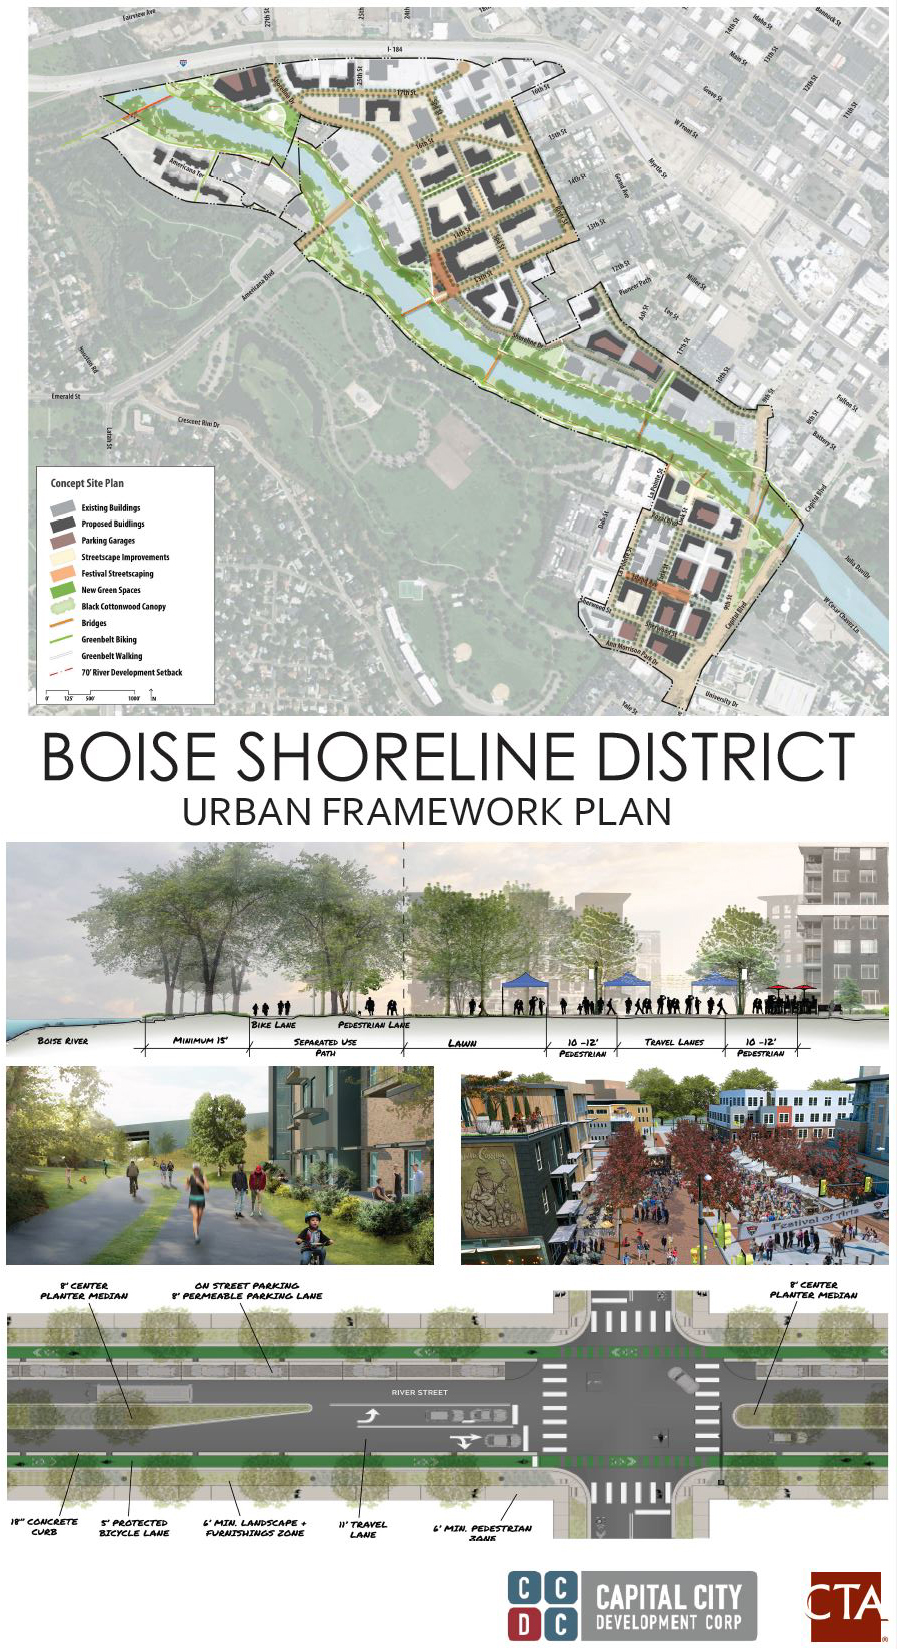 Merit Award - CTA Group- Shoreline DistrictPlanning & Analysis Category